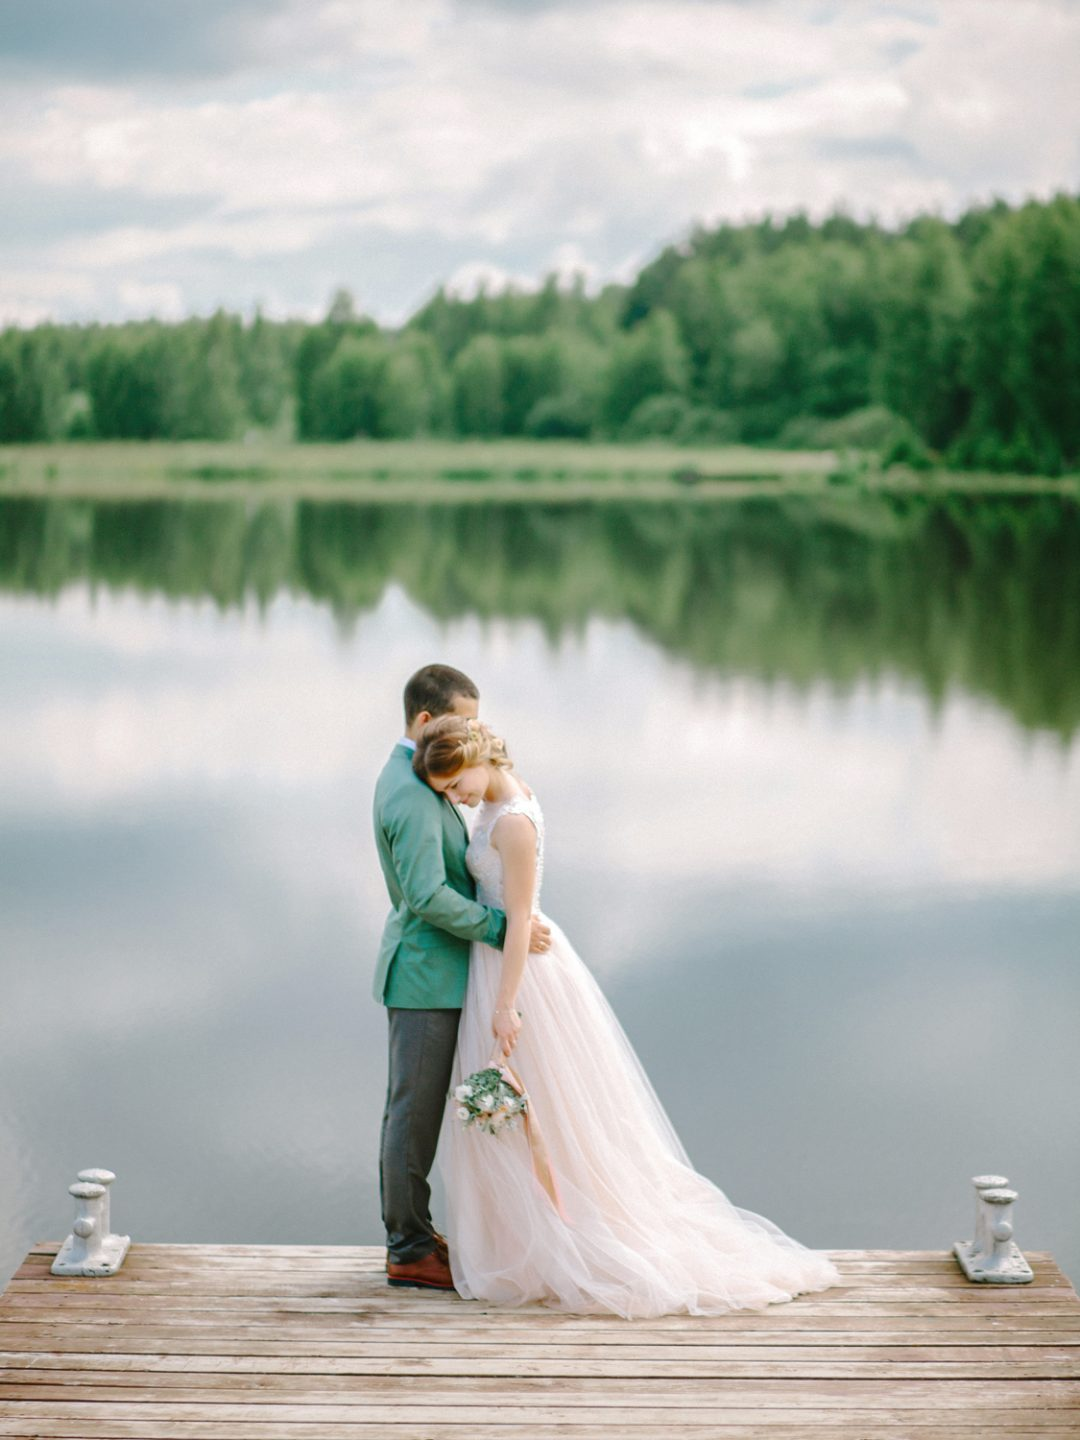 polinastudio.ru_wedding_em-mini